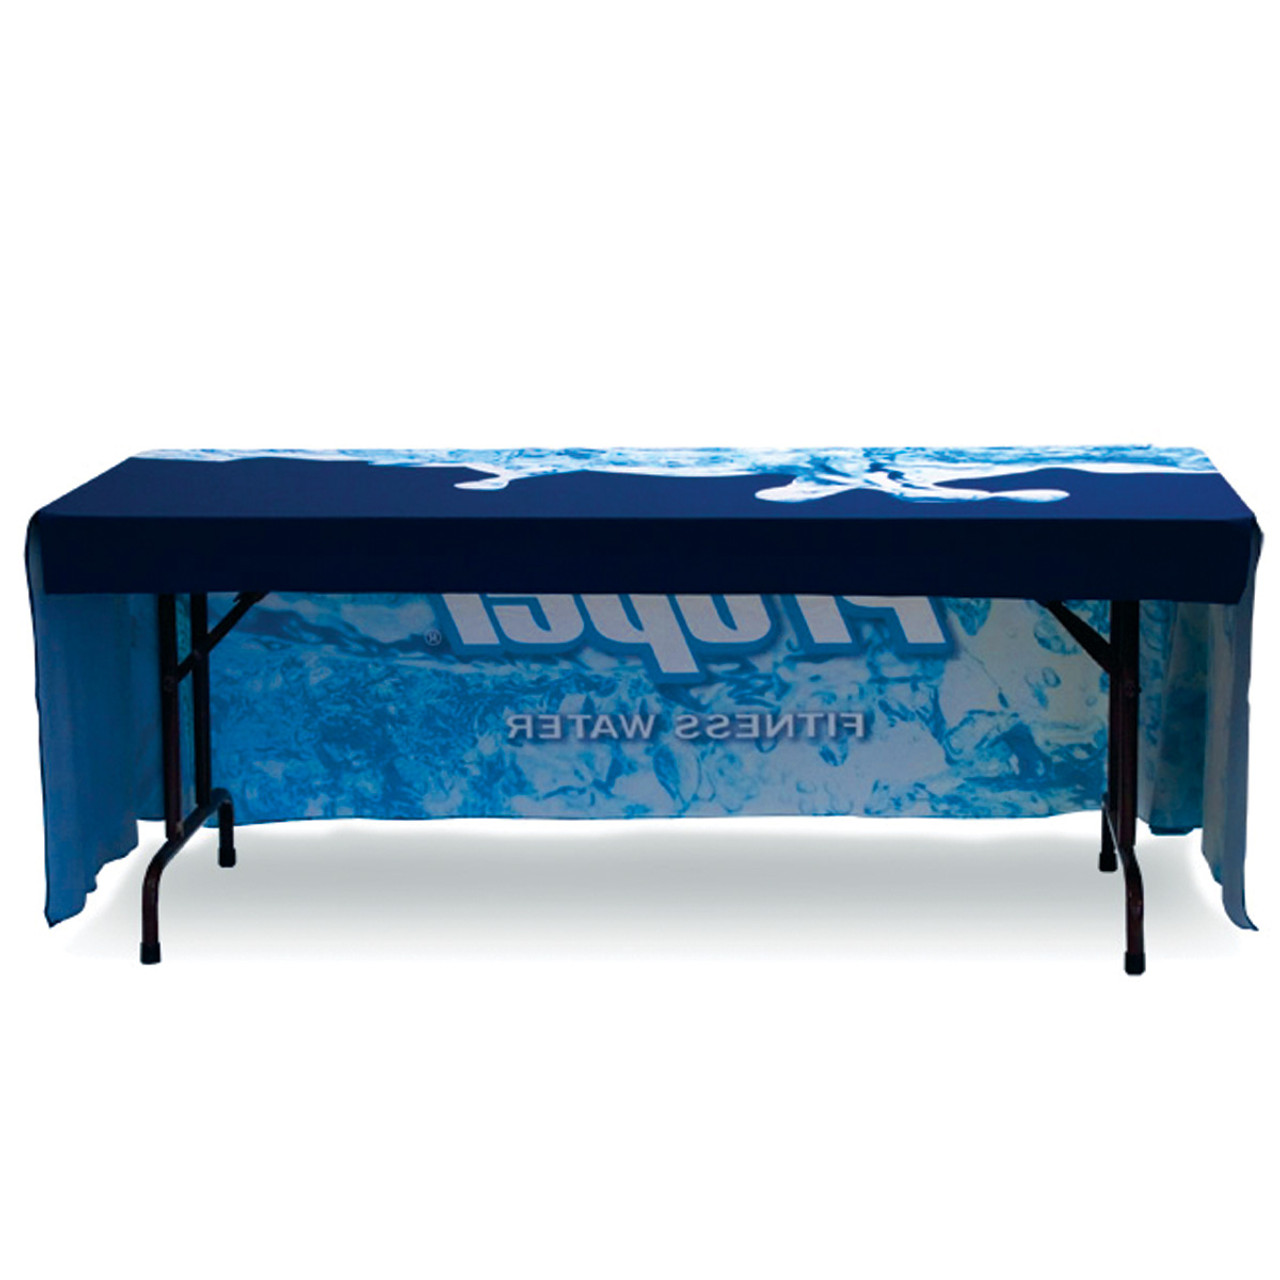 6 ft table throw side view 3 sided